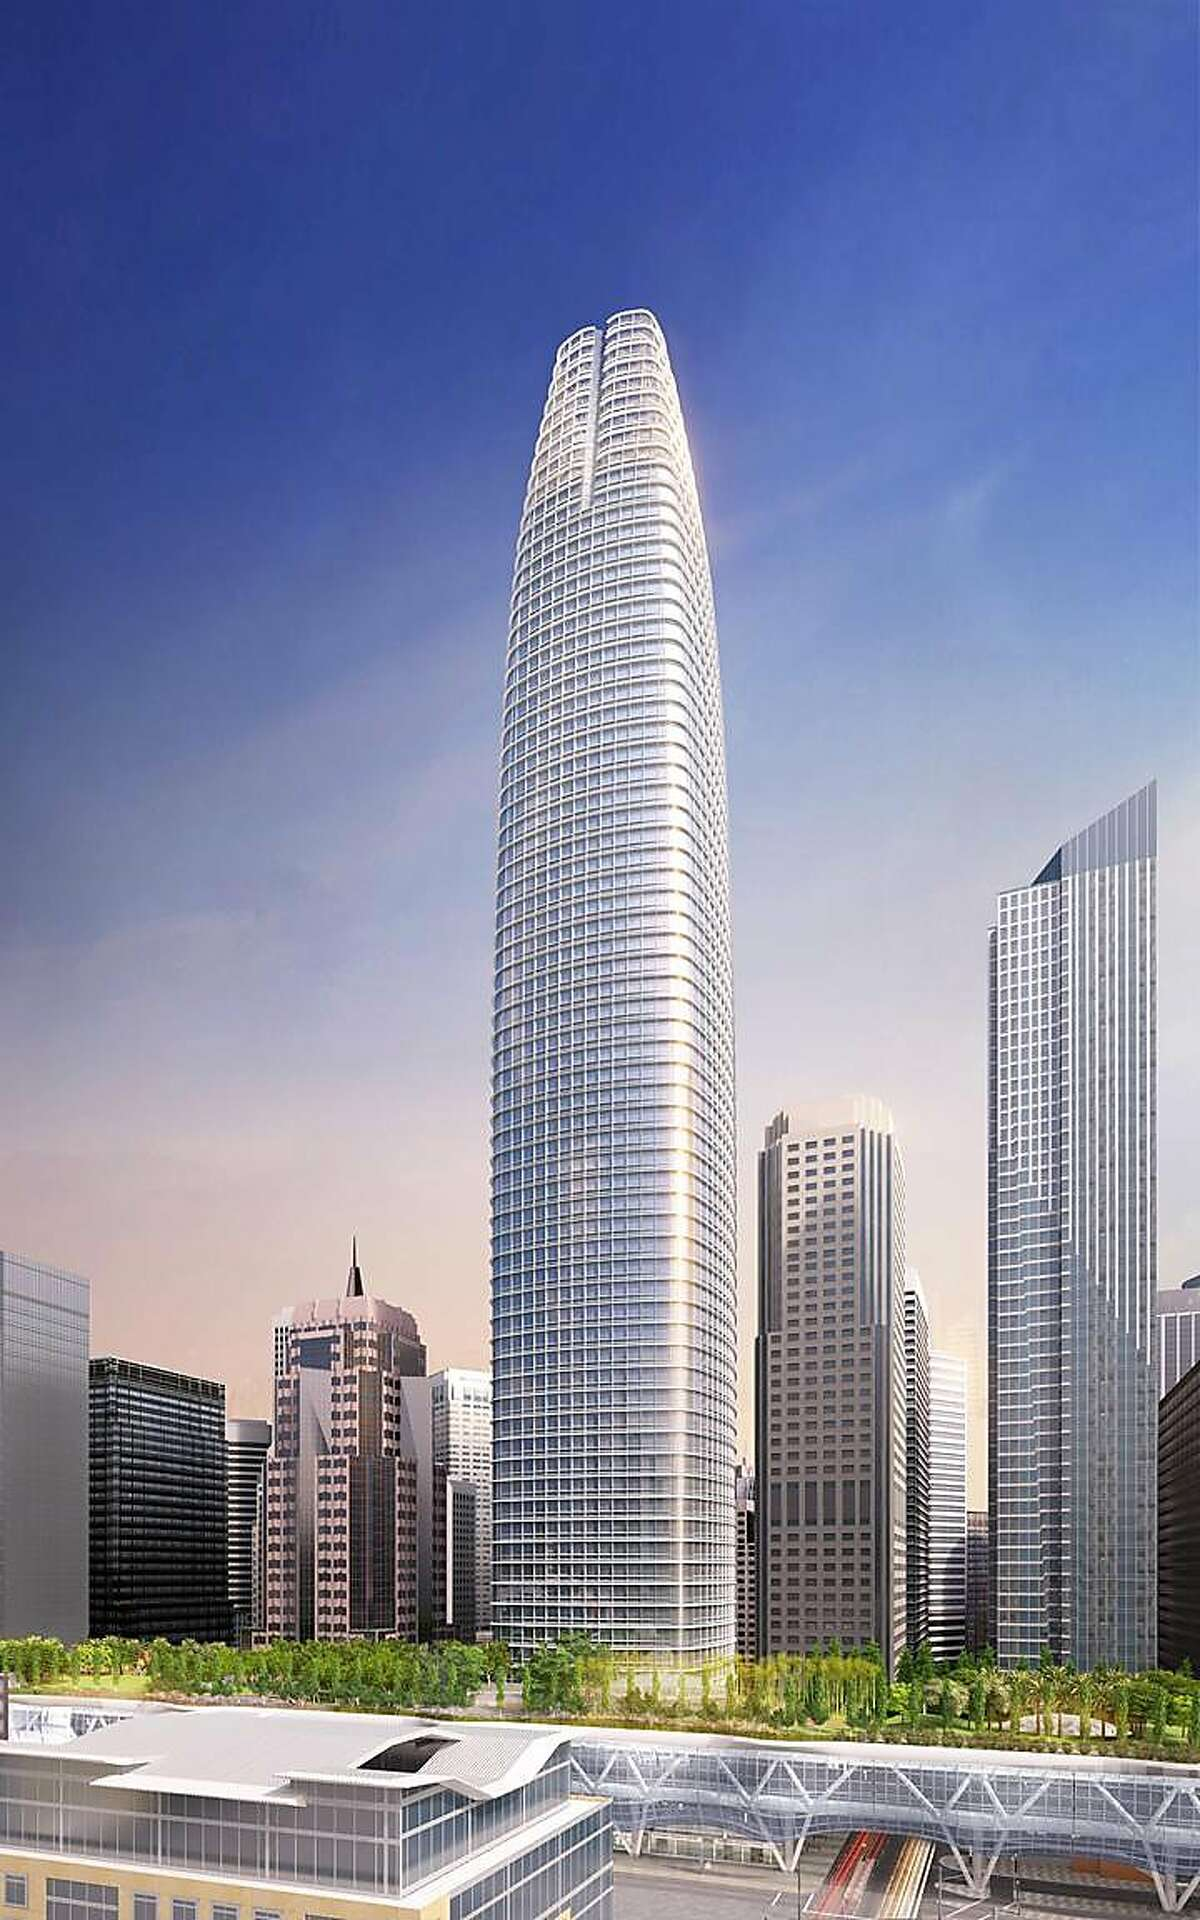 The winning vision: The refined Pelli Clark Pelli Architects design for what is now known as the Salesforce Tower at First and Mission streets in San Francisco. It was tweaked to give it a more distinctive appearance on the skyline, especially at night. Compare it to the reality ...